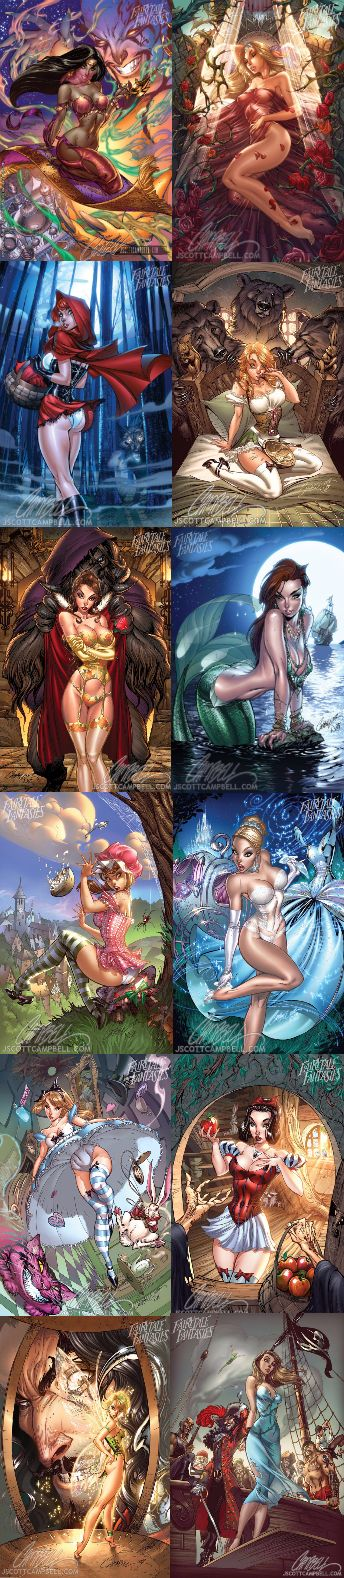 J. Scott Campbell's Fairytale Fantasies :)))